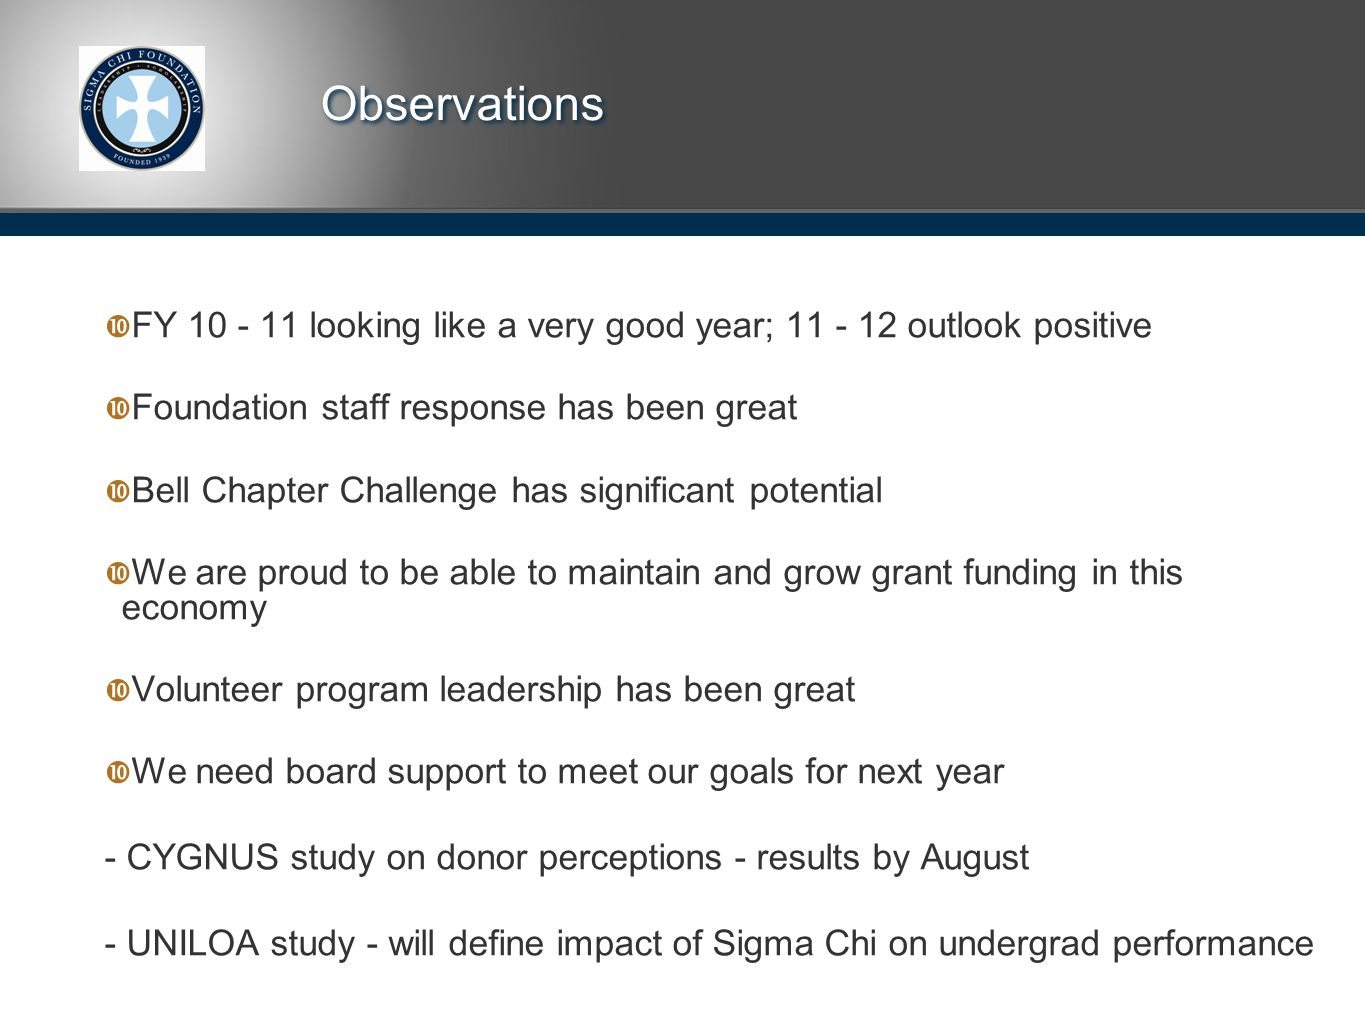 Observations  FY 10 - 11 looking like a very good year; 11 - 12 outlook positive  Foundation staff response has been great  Bell Chapter Challenge has significant potential  We are proud to be able to maintain and grow grant funding in this economy  Volunteer program leadership has been great  We need board support to meet our goals for next year - CYGNUS study on donor perceptions - results by August - UNILOA study - will define impact of Sigma Chi on undergrad performance